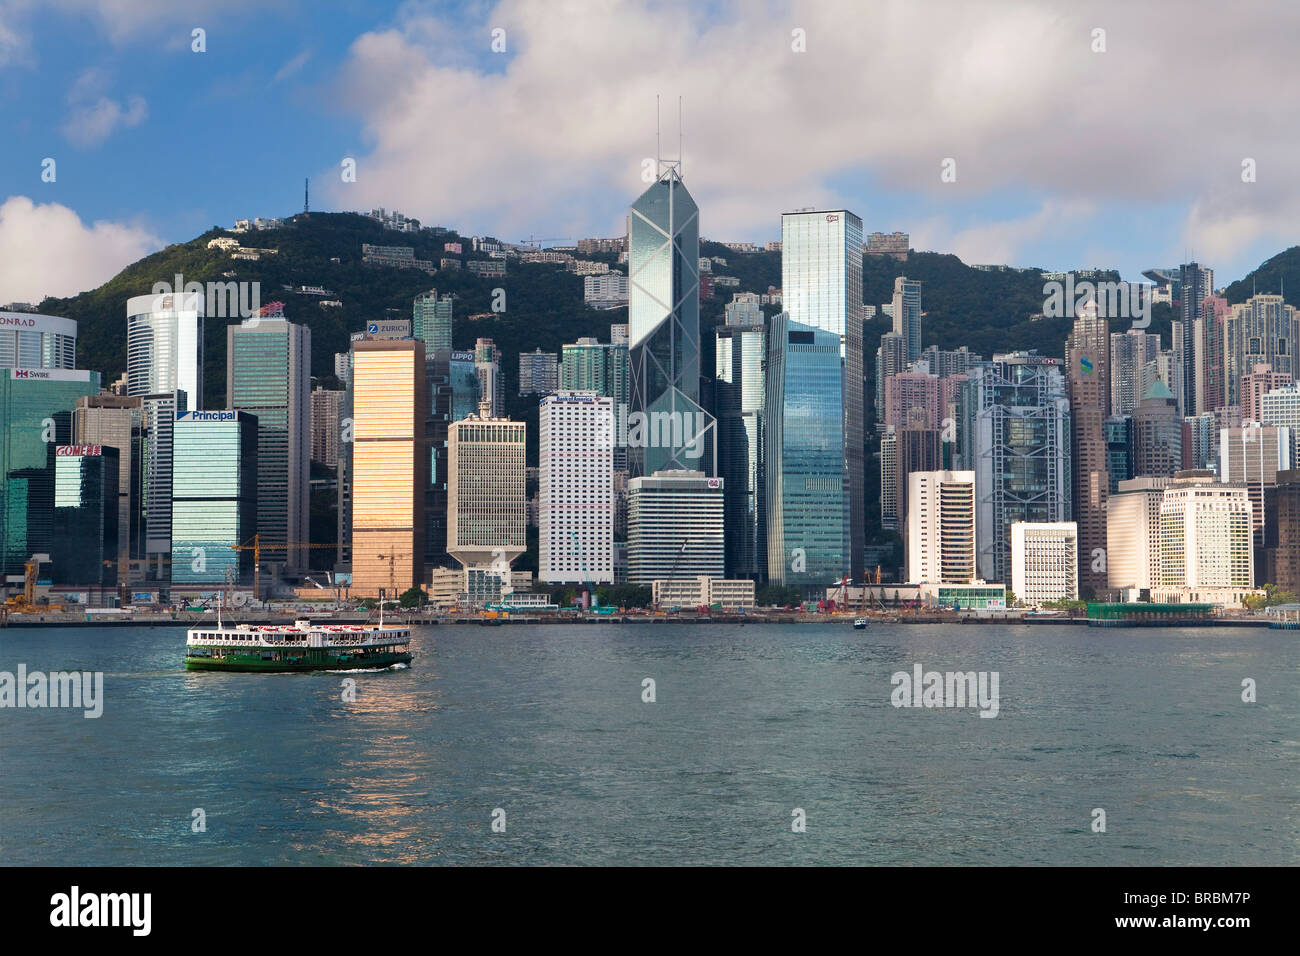 Toits de Central, l'île de Hong Kong, le port de Victoria, Hong Kong, Chine Photo Stock